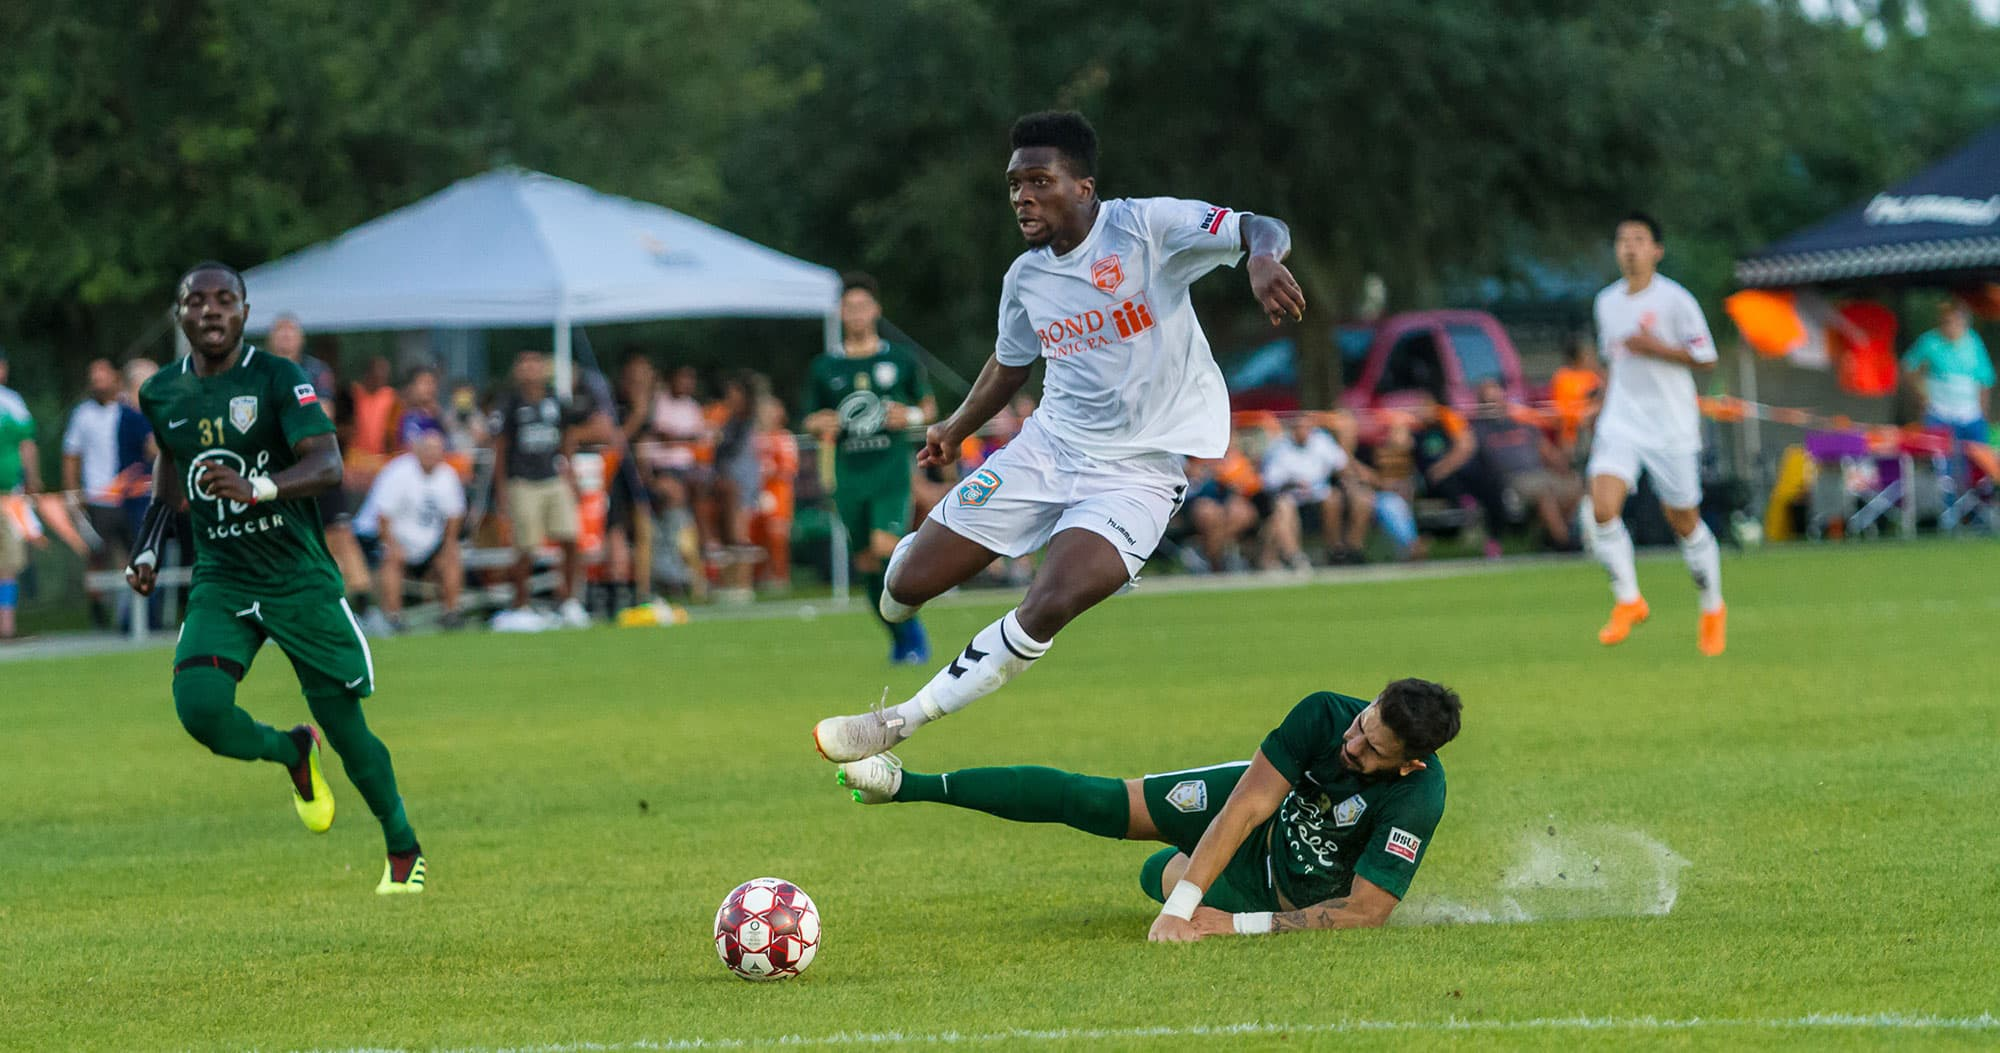 soccer player jumping over opponent to get to ball during Florida Tropics SC game at Lake Myrtle Sports Complex in Auburndale